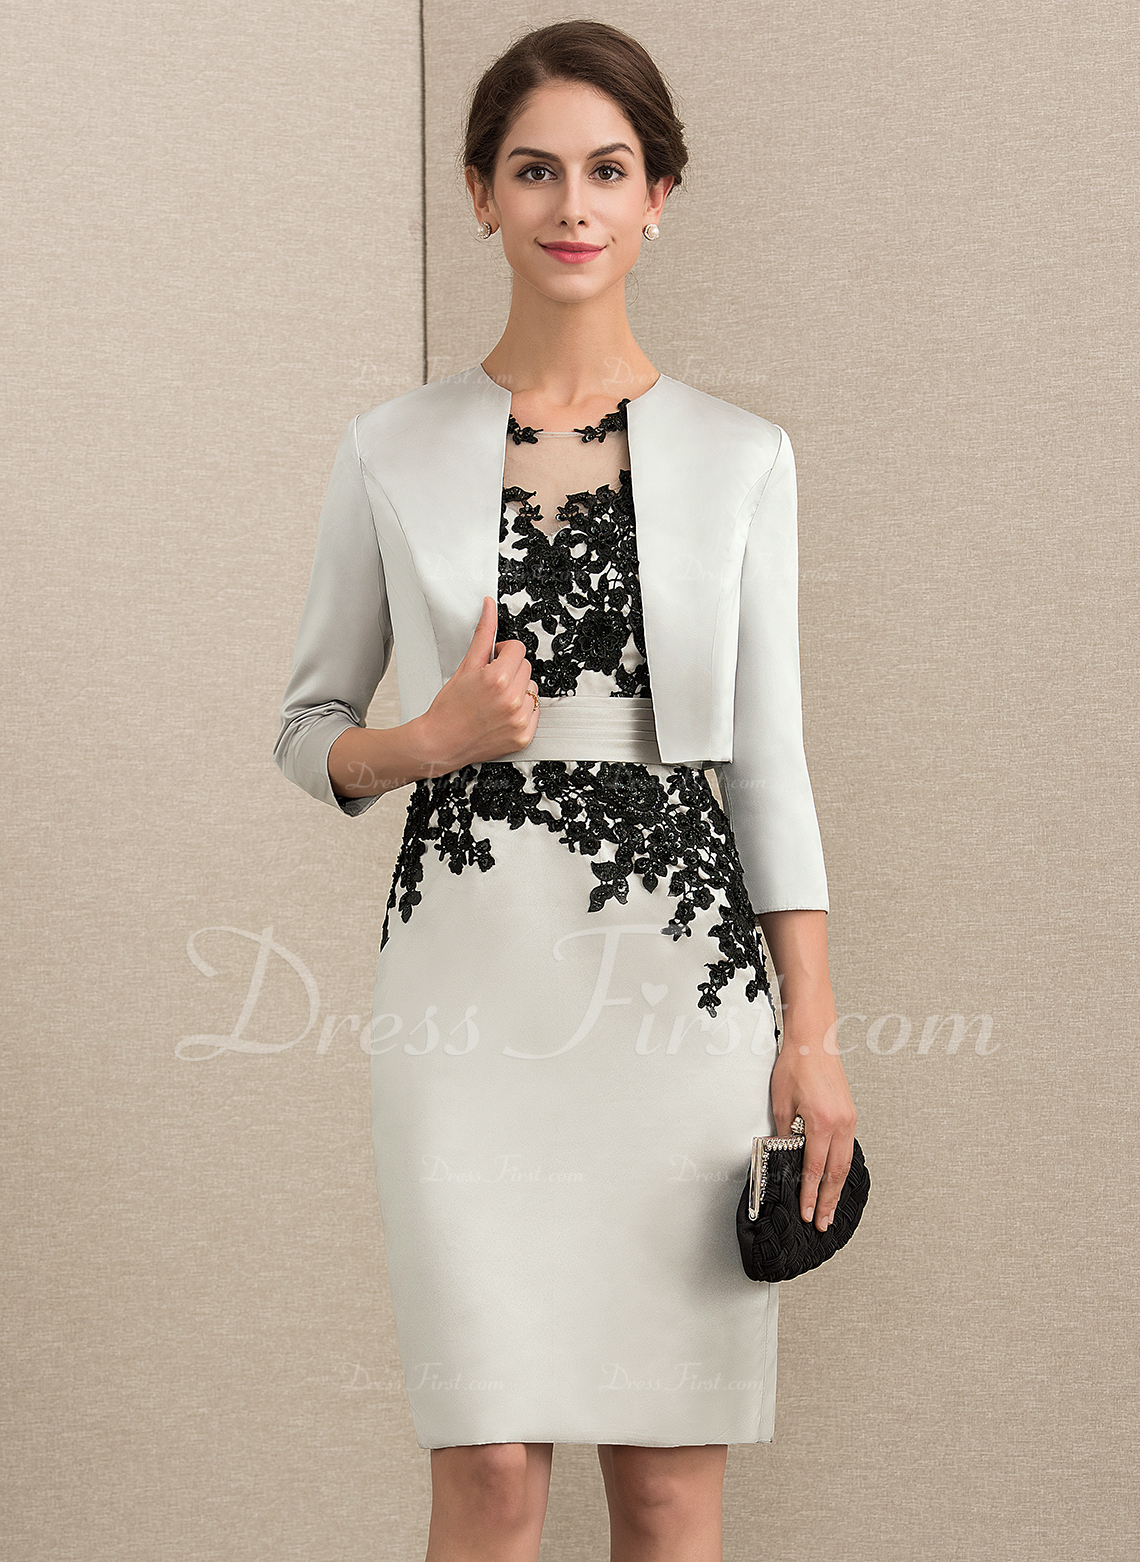 b1d6b365 Sheath/Column Scoop Neck Knee-Length Satin Lace Mother of the Bride Dress  With Beading Sequins #164096